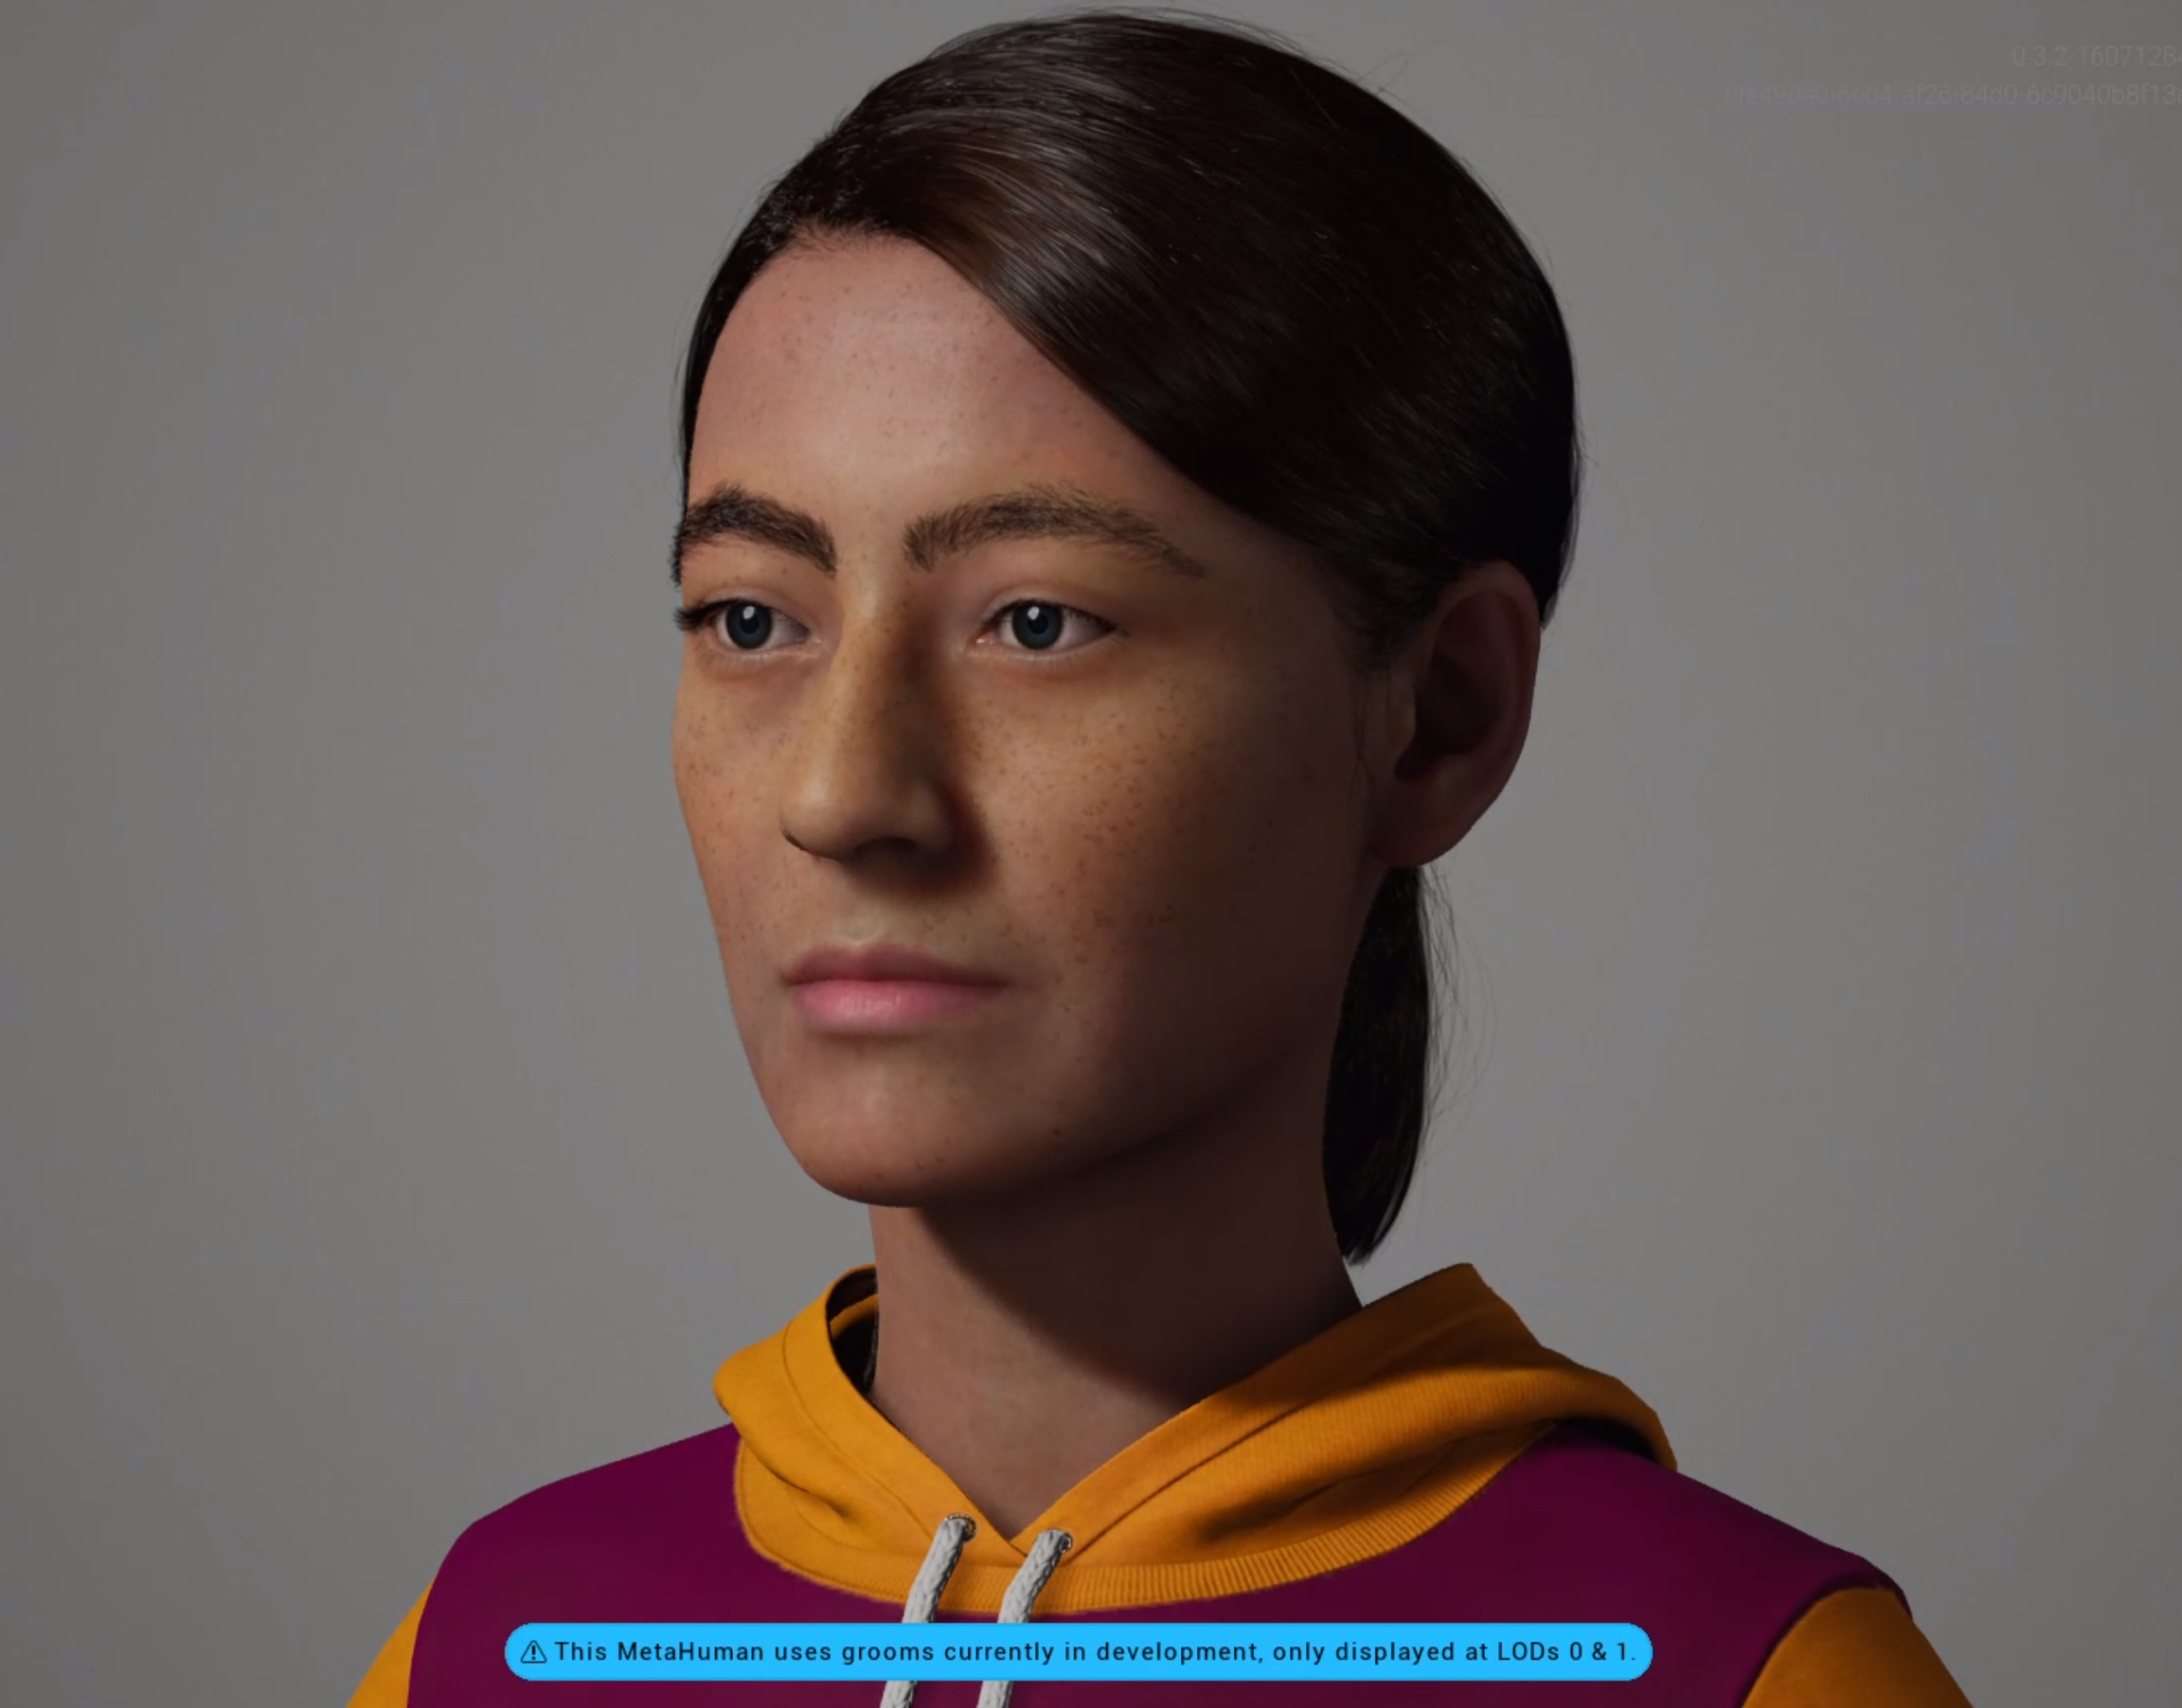 This is Bernadette a MetaHuman created with the Unreal Engine Metahuman Creator